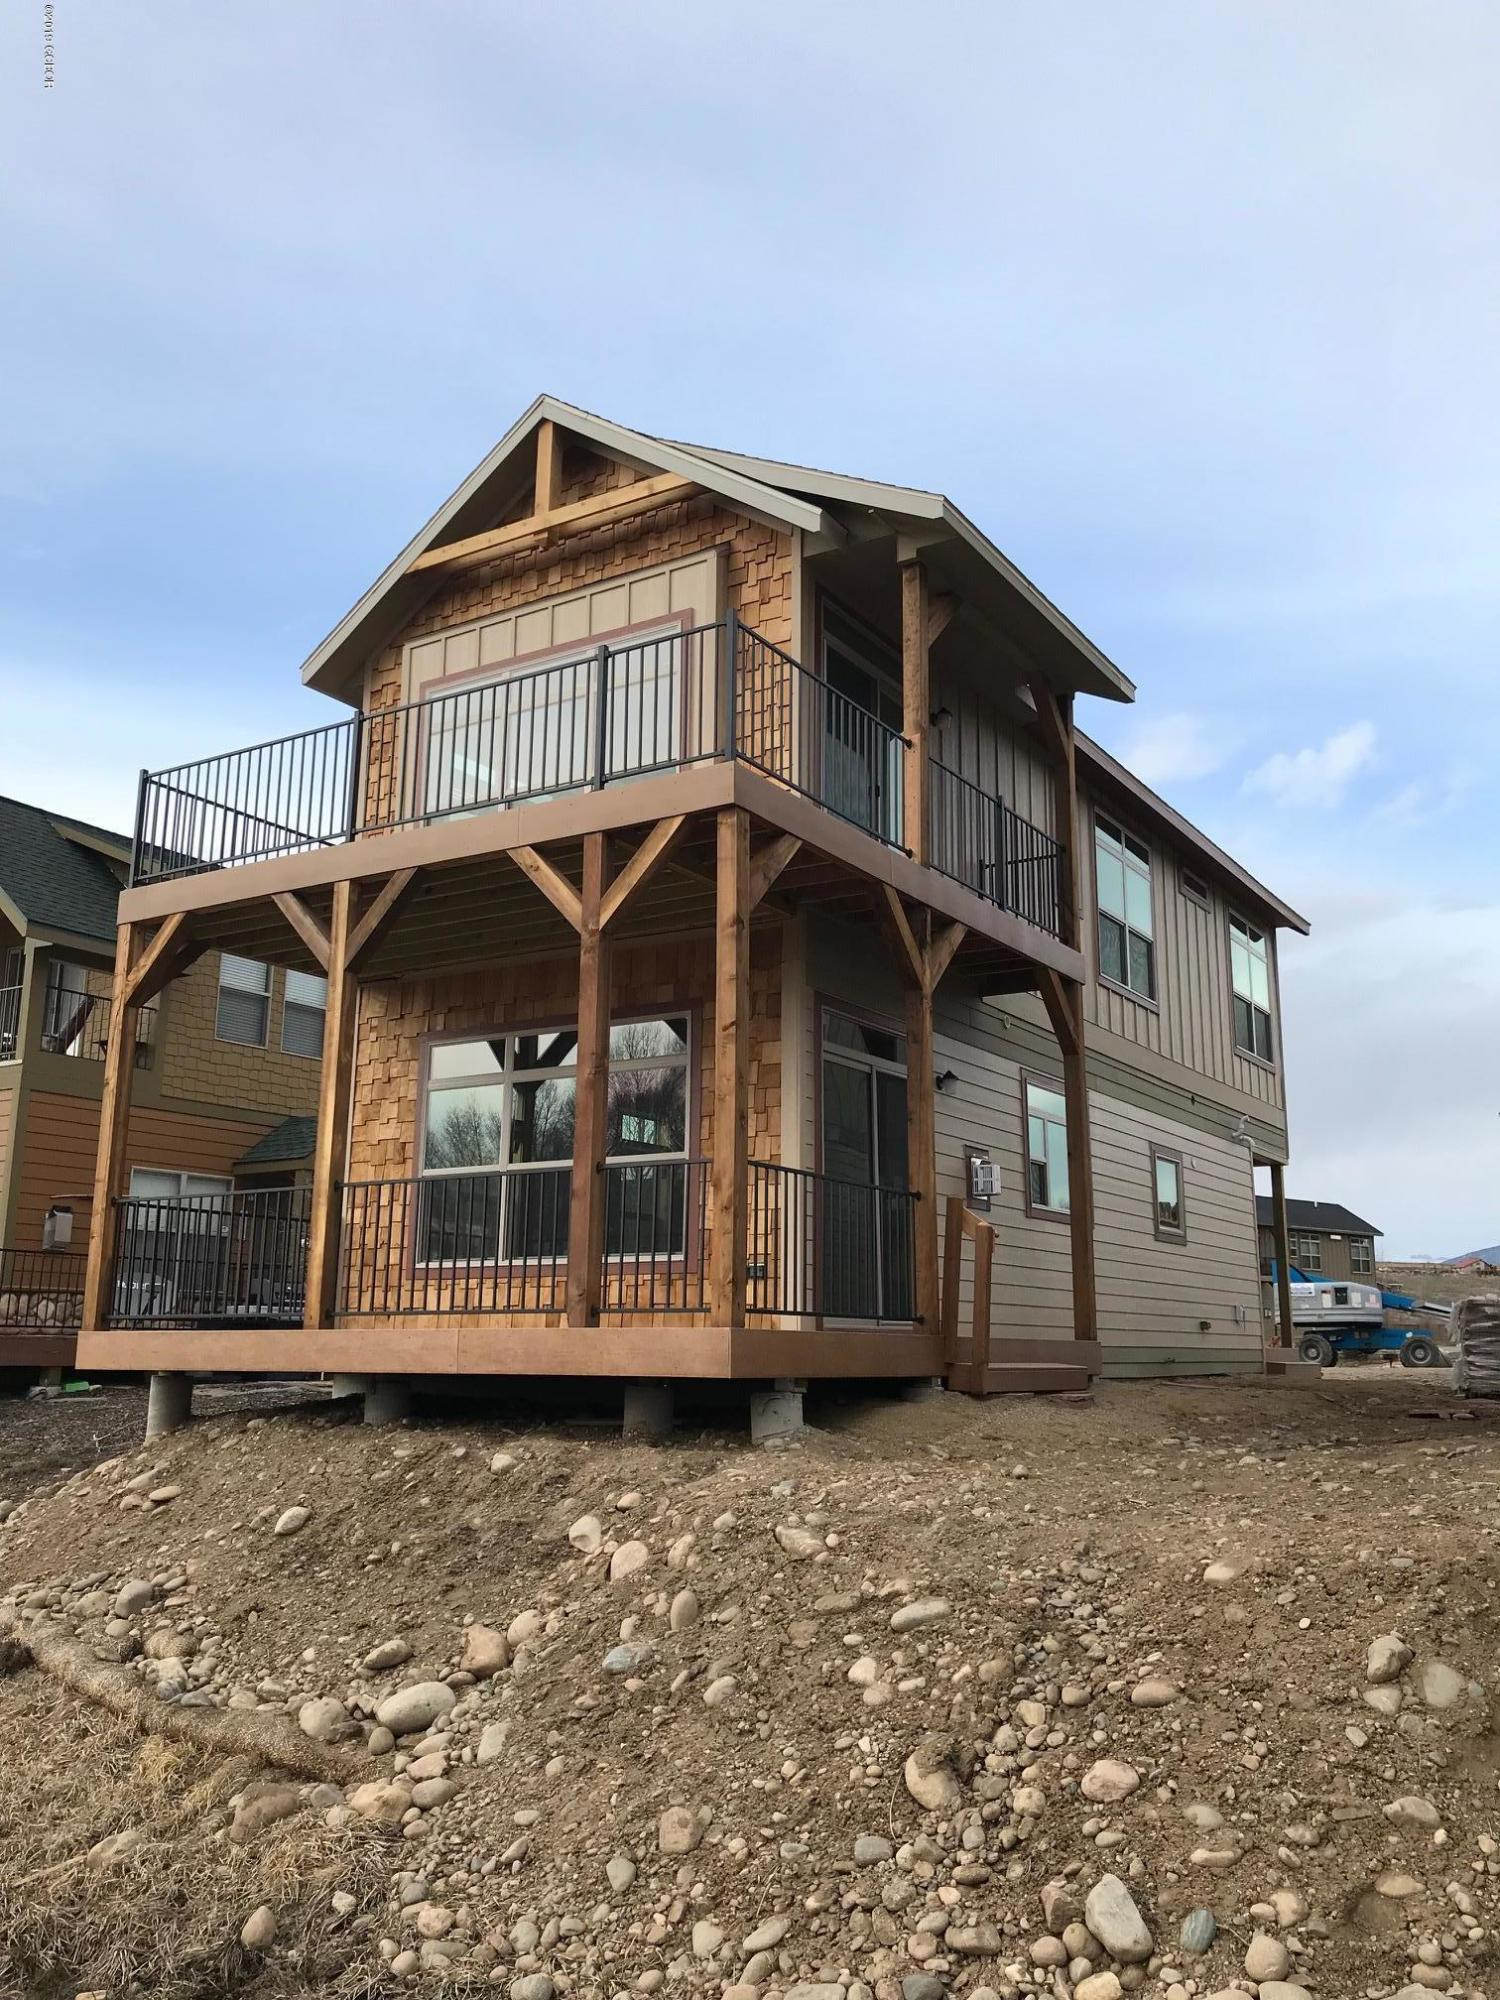 MLS# 19-1217 - 1 - 132 Edgewater Circle #, Granby, CO 80446